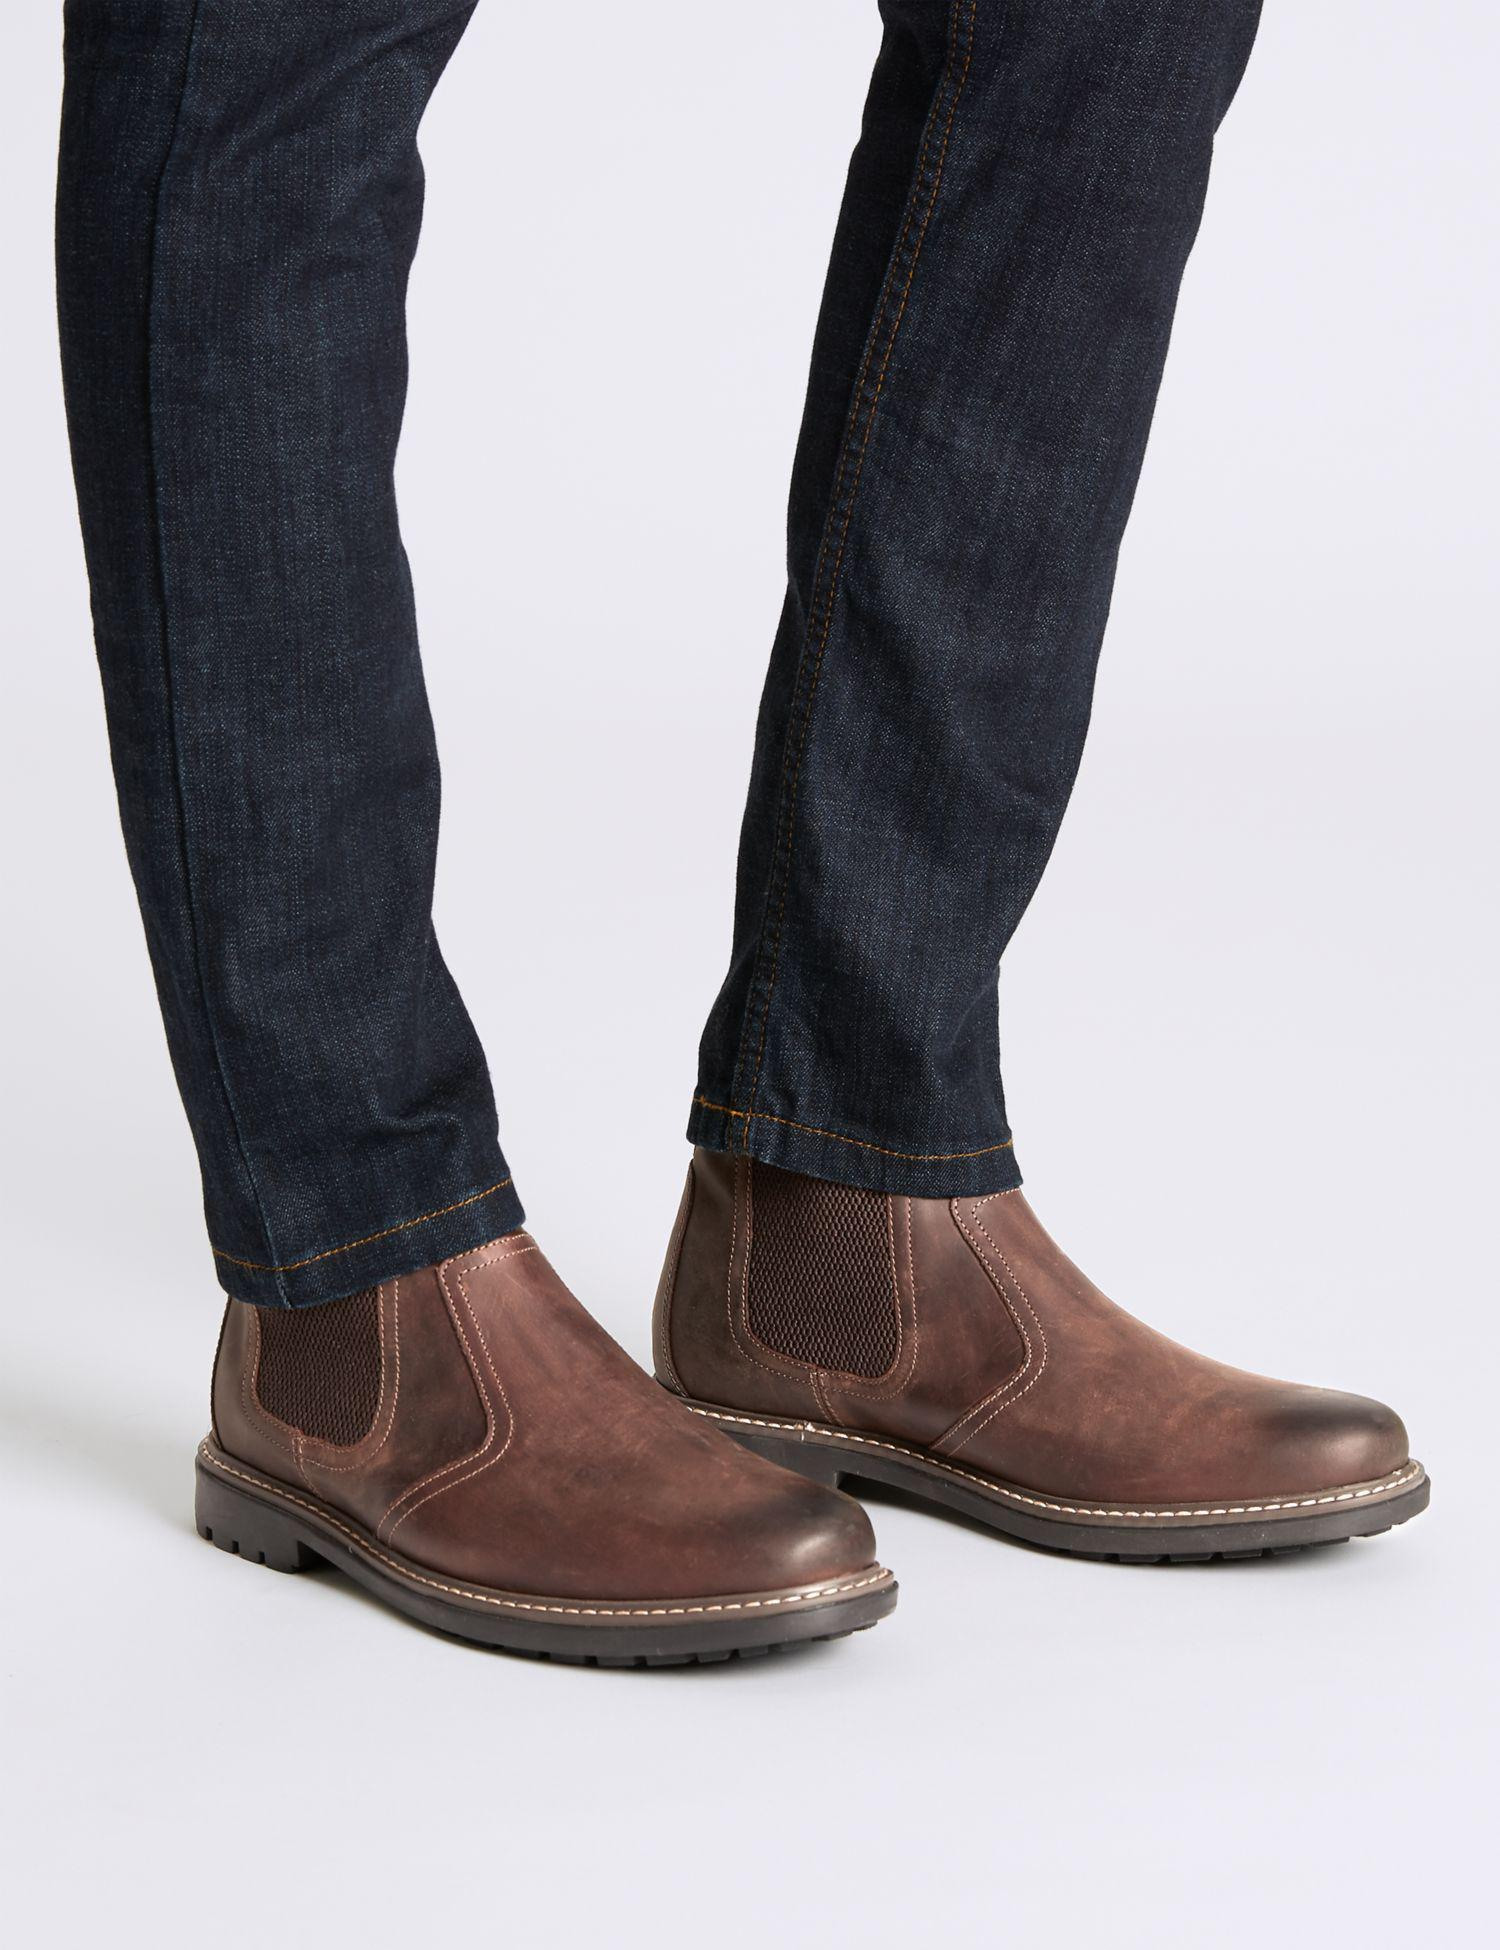 c28bc37ede0 Marks & Spencer Big & Tall Leather Pull-on Chelsea Boots in Brown ...